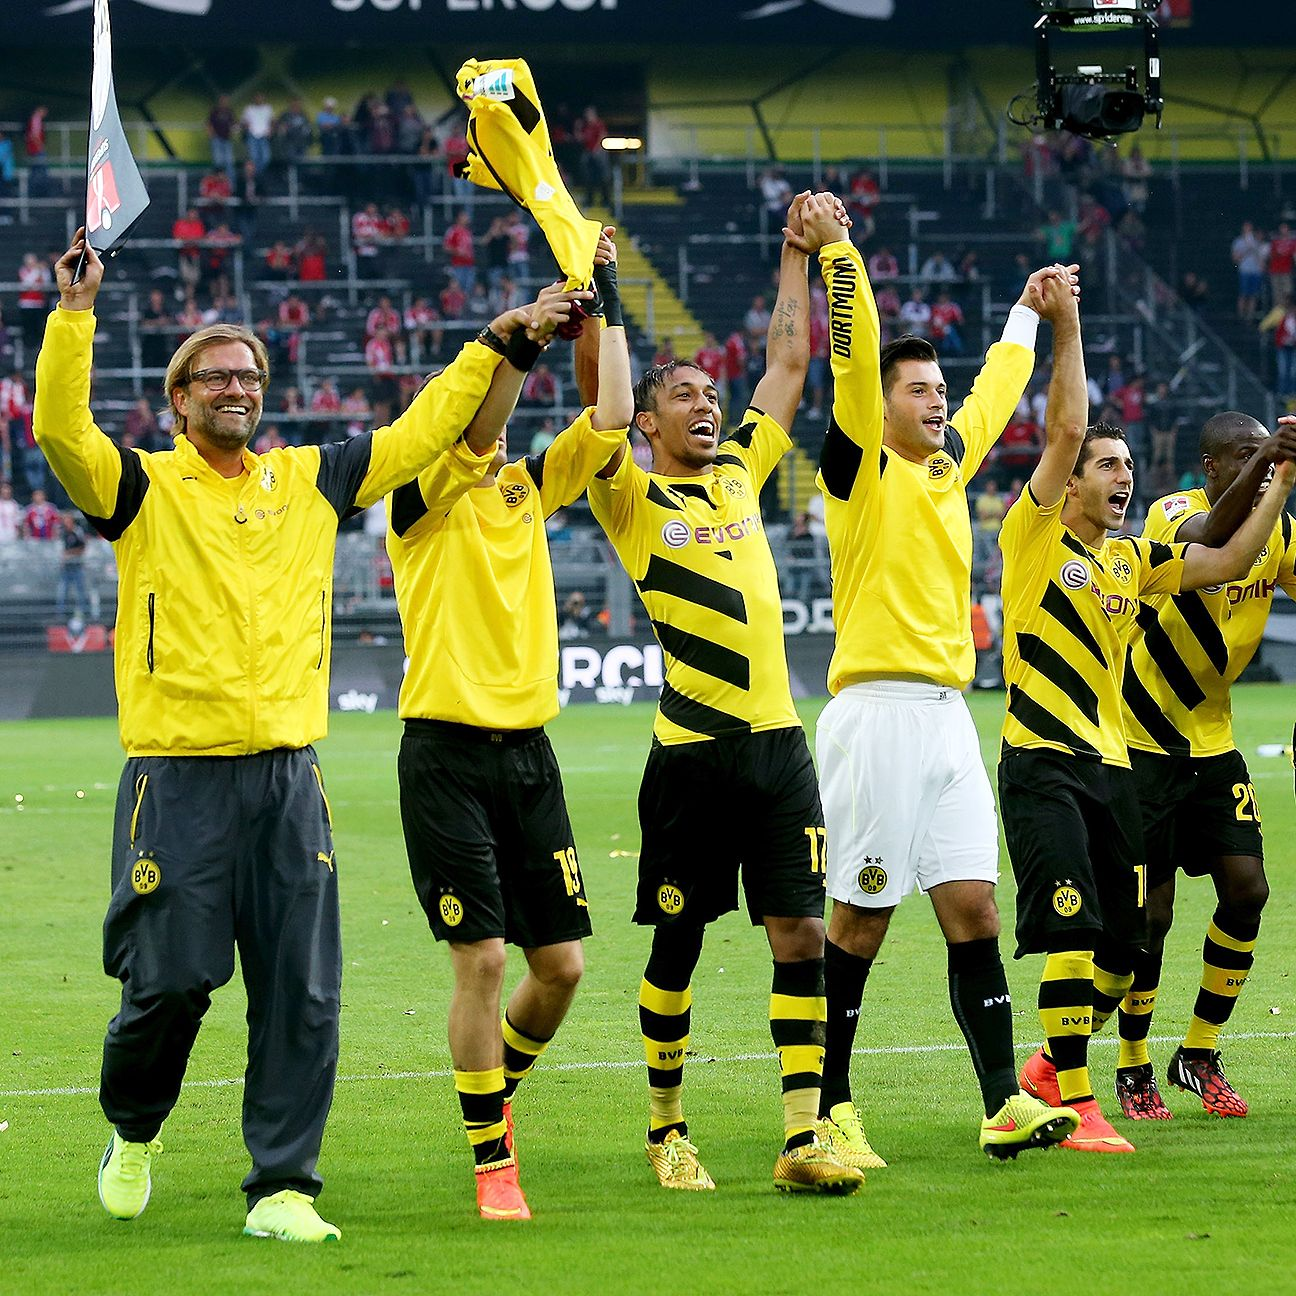 Jurgen Klopp and Borussia Dortmund were all smiles after claiming the first trophy of the 2014-15 German season.